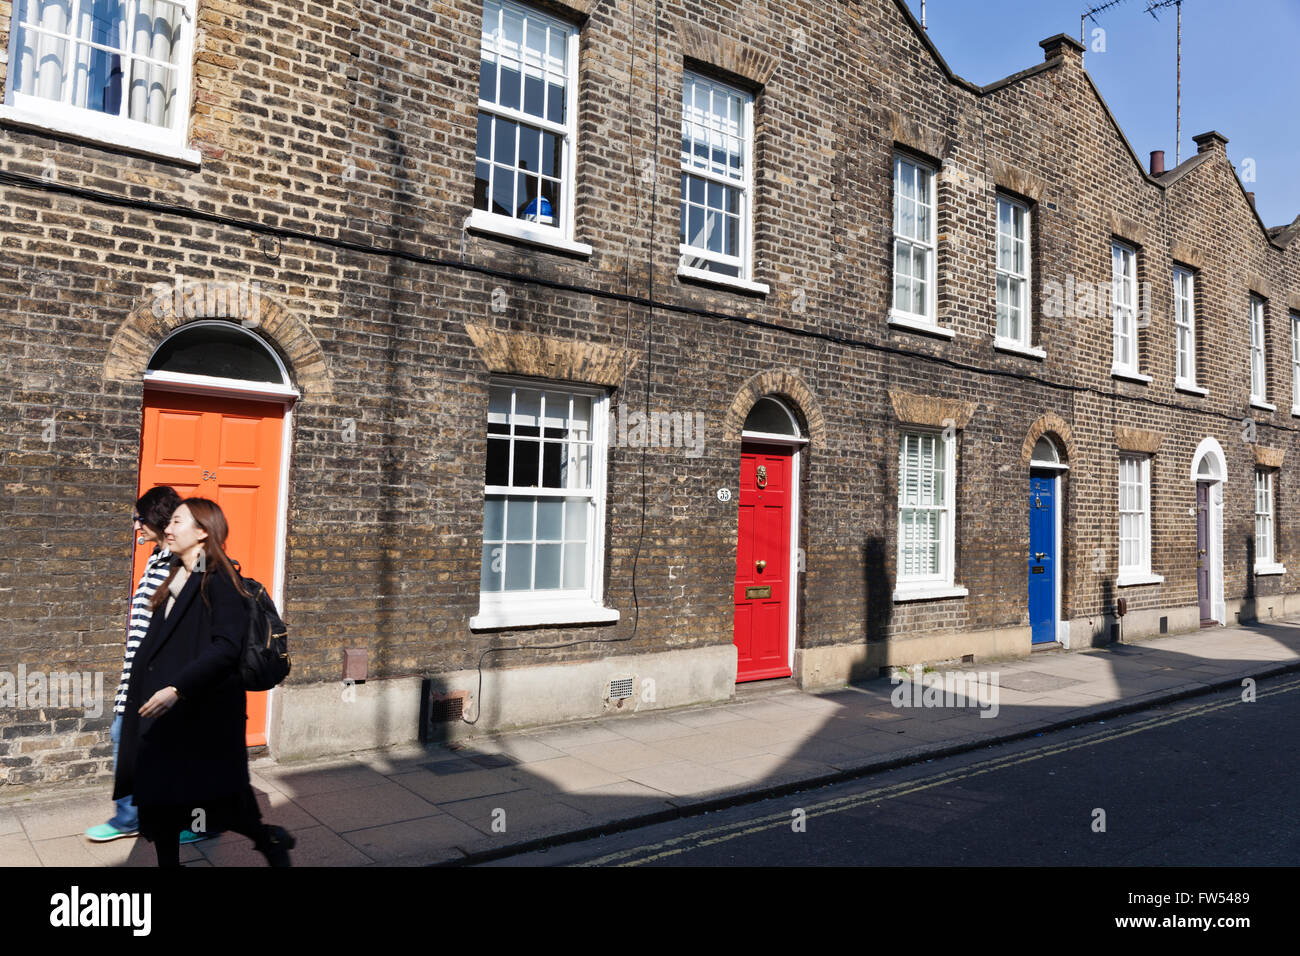 Victorian brick terraced houses on Roupell Street in Lambeth, London, England. - Stock Image